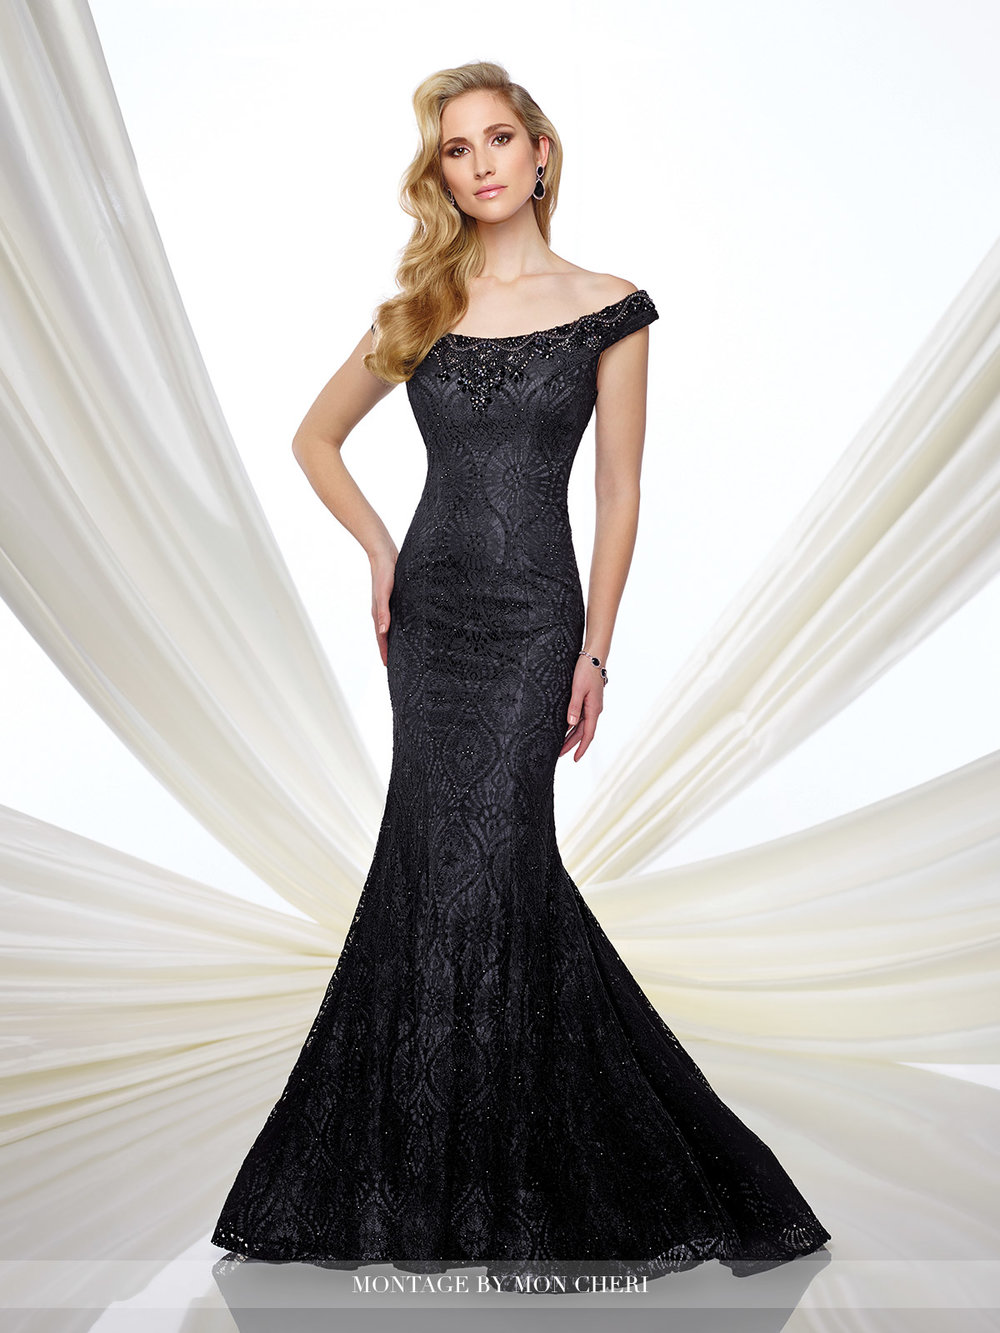 216975_mother_of_the_bride_dresses.jpg